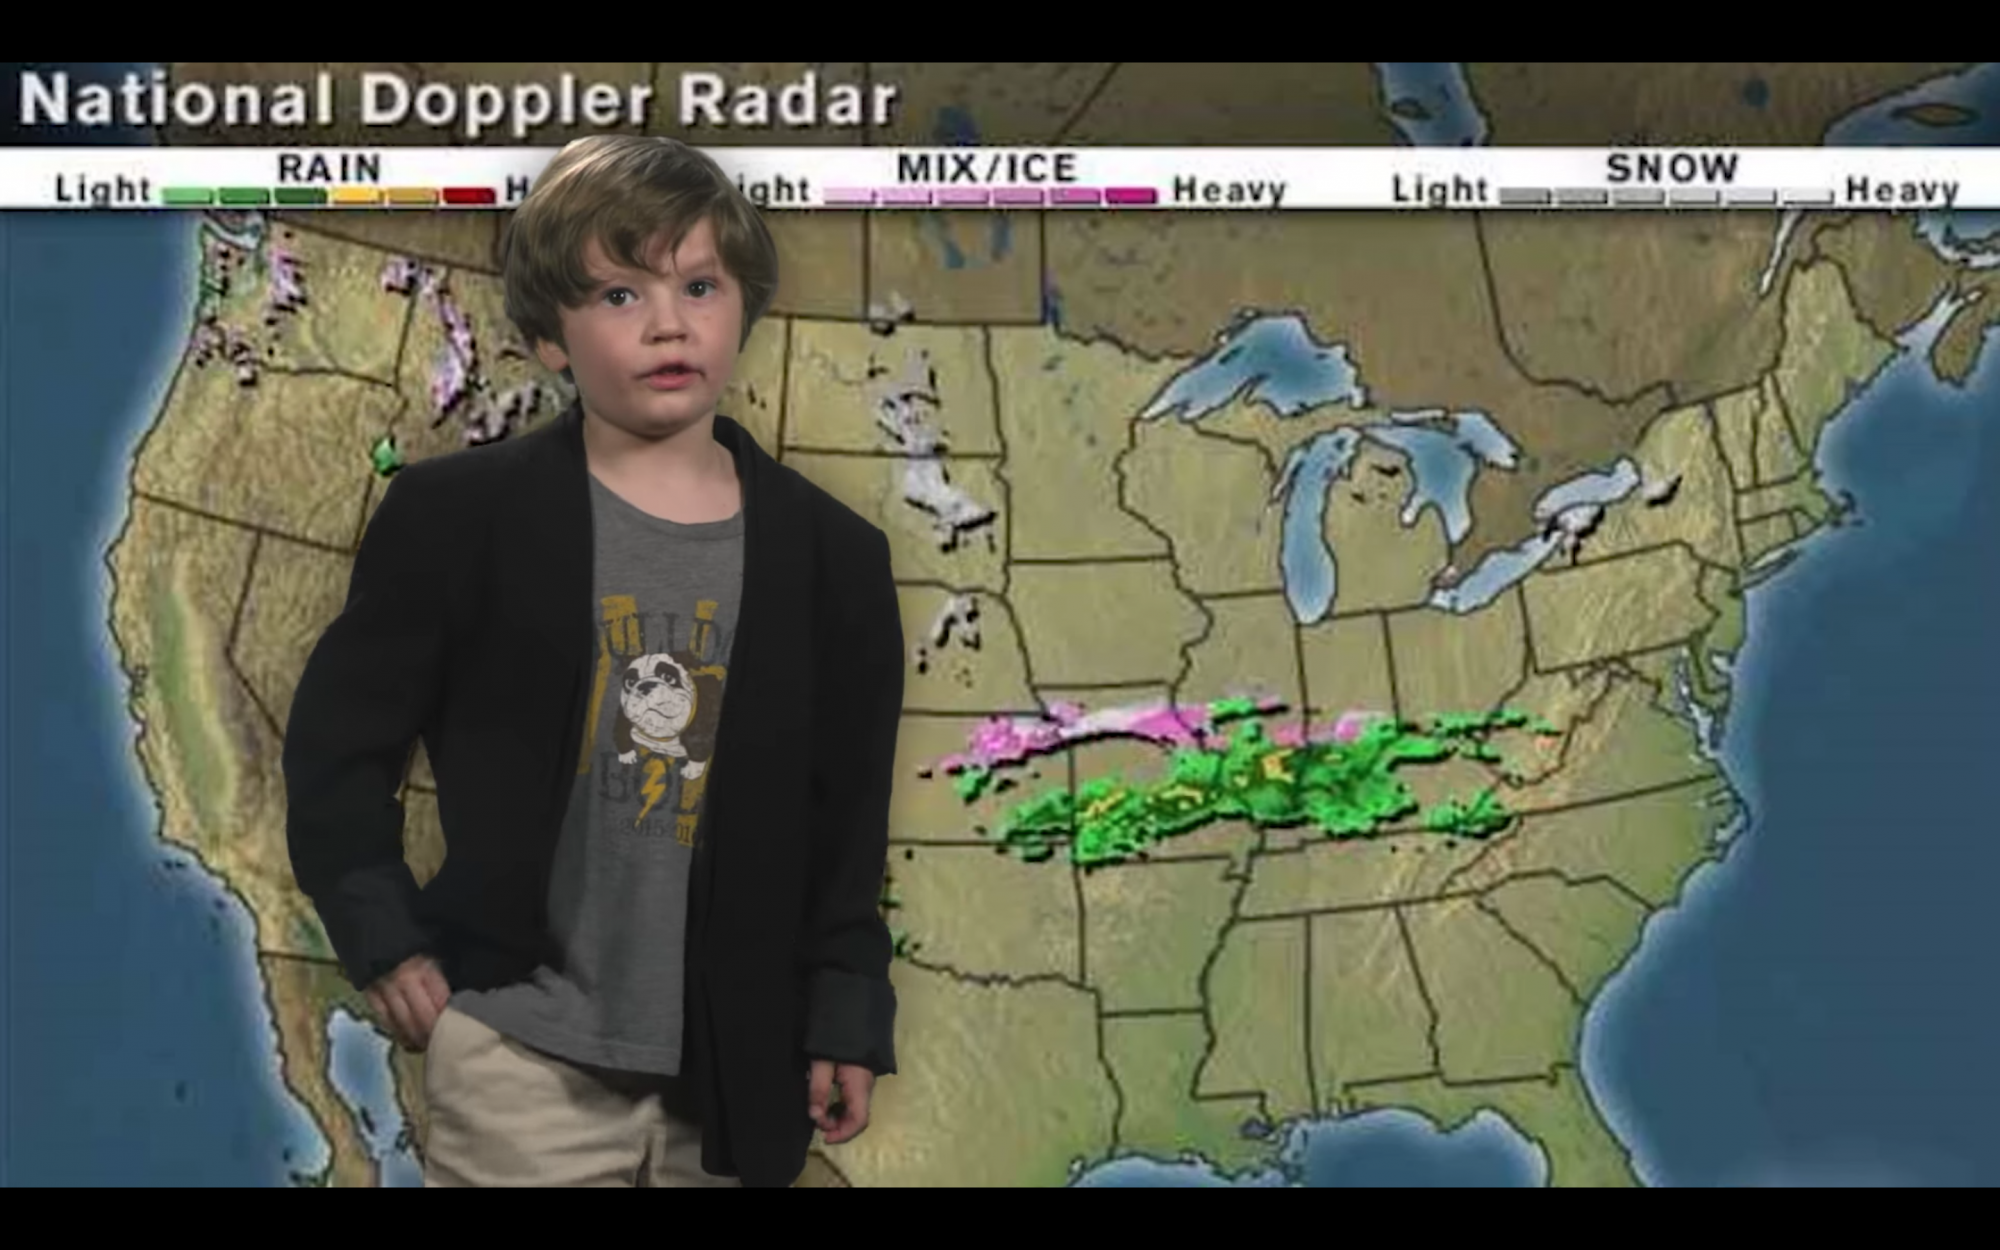 This Tennessee Kindergartner's Hilarious Weather Report is Going Viral